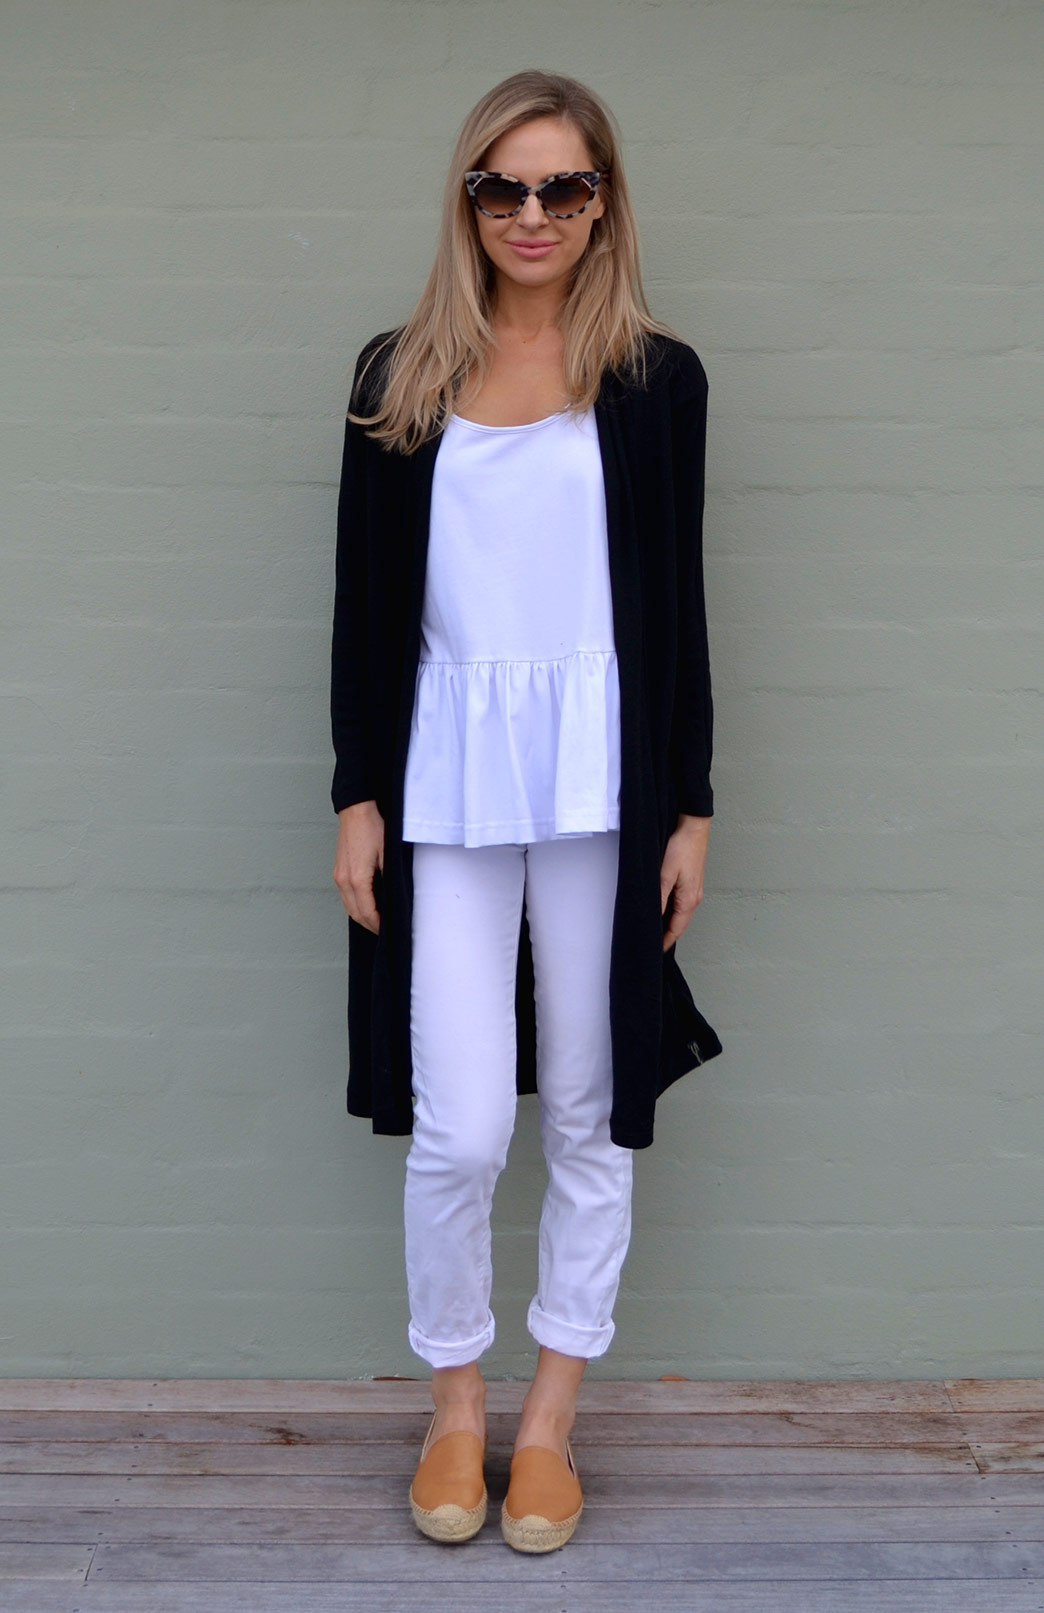 Long Drape Cardigan - Lightweight - Women's Black Lightweight Merino Wool Long Drape - Smitten Merino Tasmania Australia